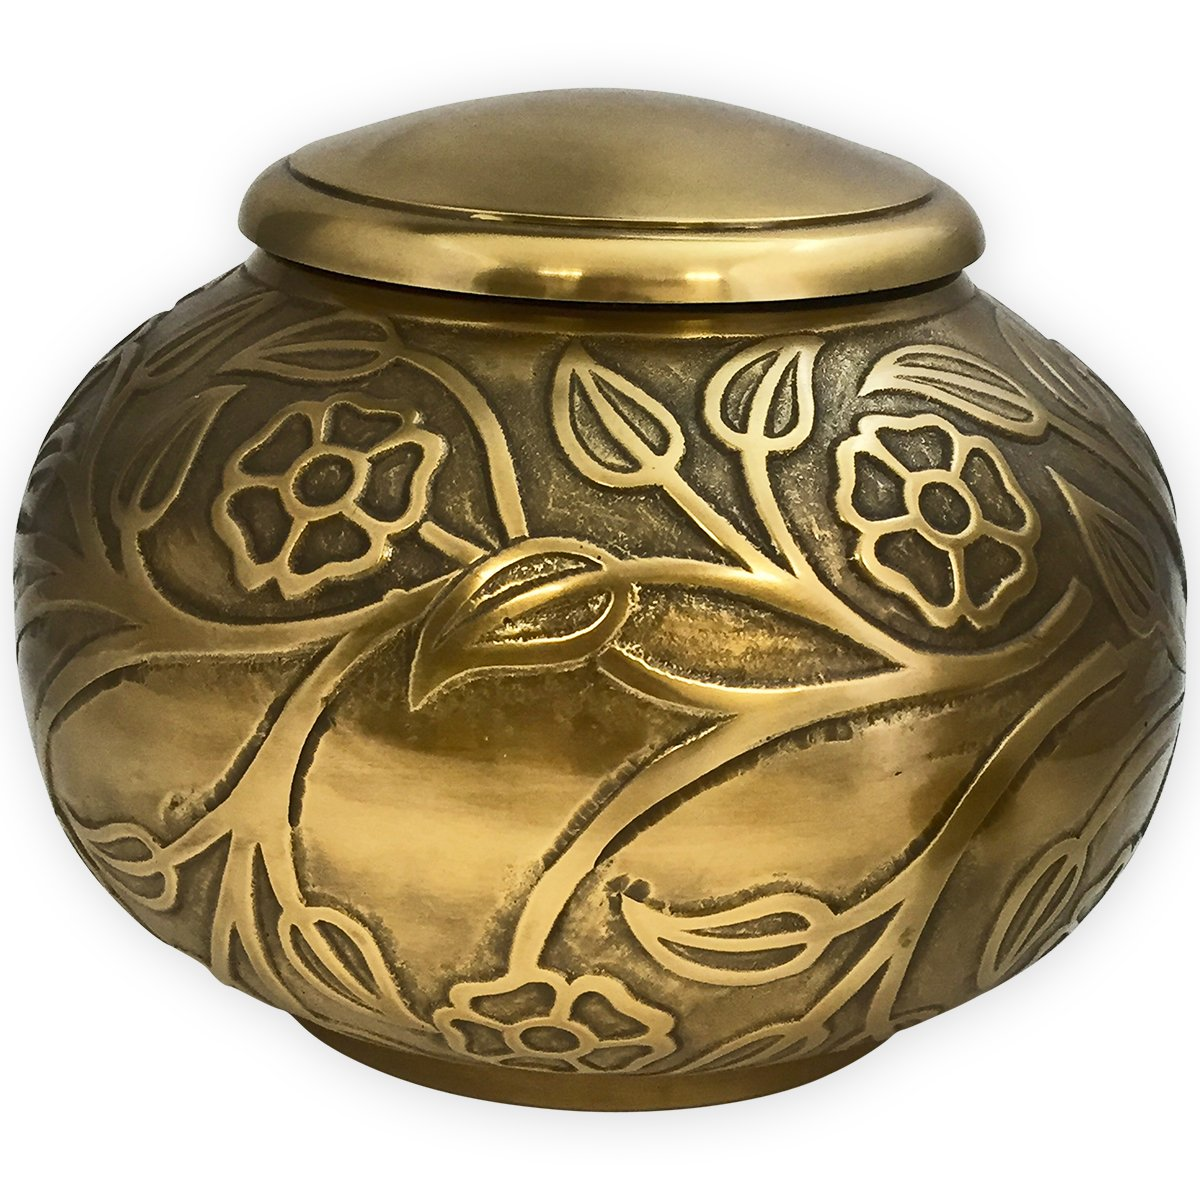 Beautiful Life Urns Florence Antiqued Brass Adult Cremation Urn - Unique Funeral Urn with Raised Floral Pattern (Large)